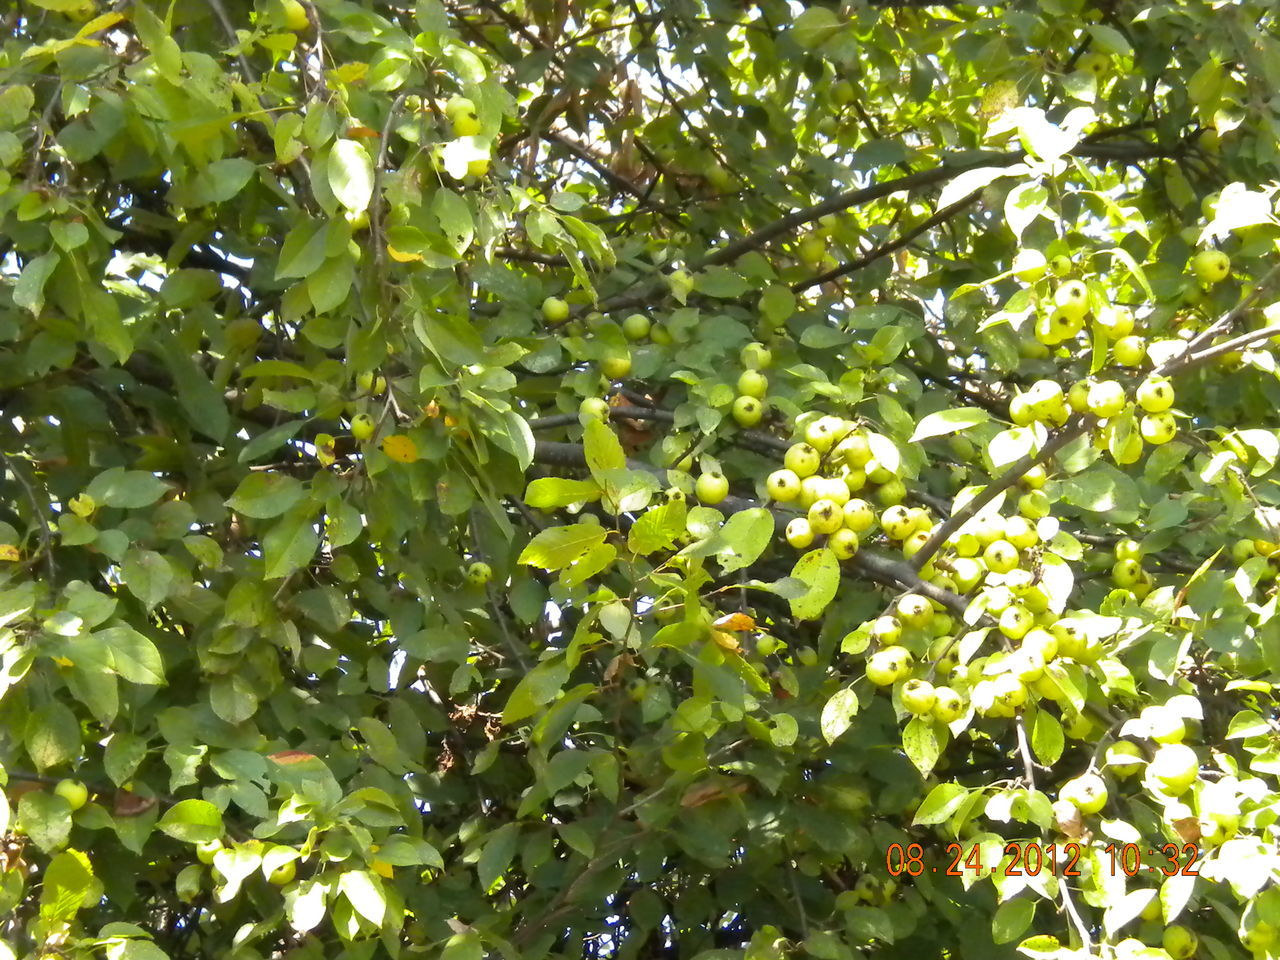 growth, fruit, tree, green color, nature, food and drink, leaf, day, outdoors, freshness, low angle view, citrus fruit, food, no people, healthy eating, beauty in nature, agriculture, plant, branch